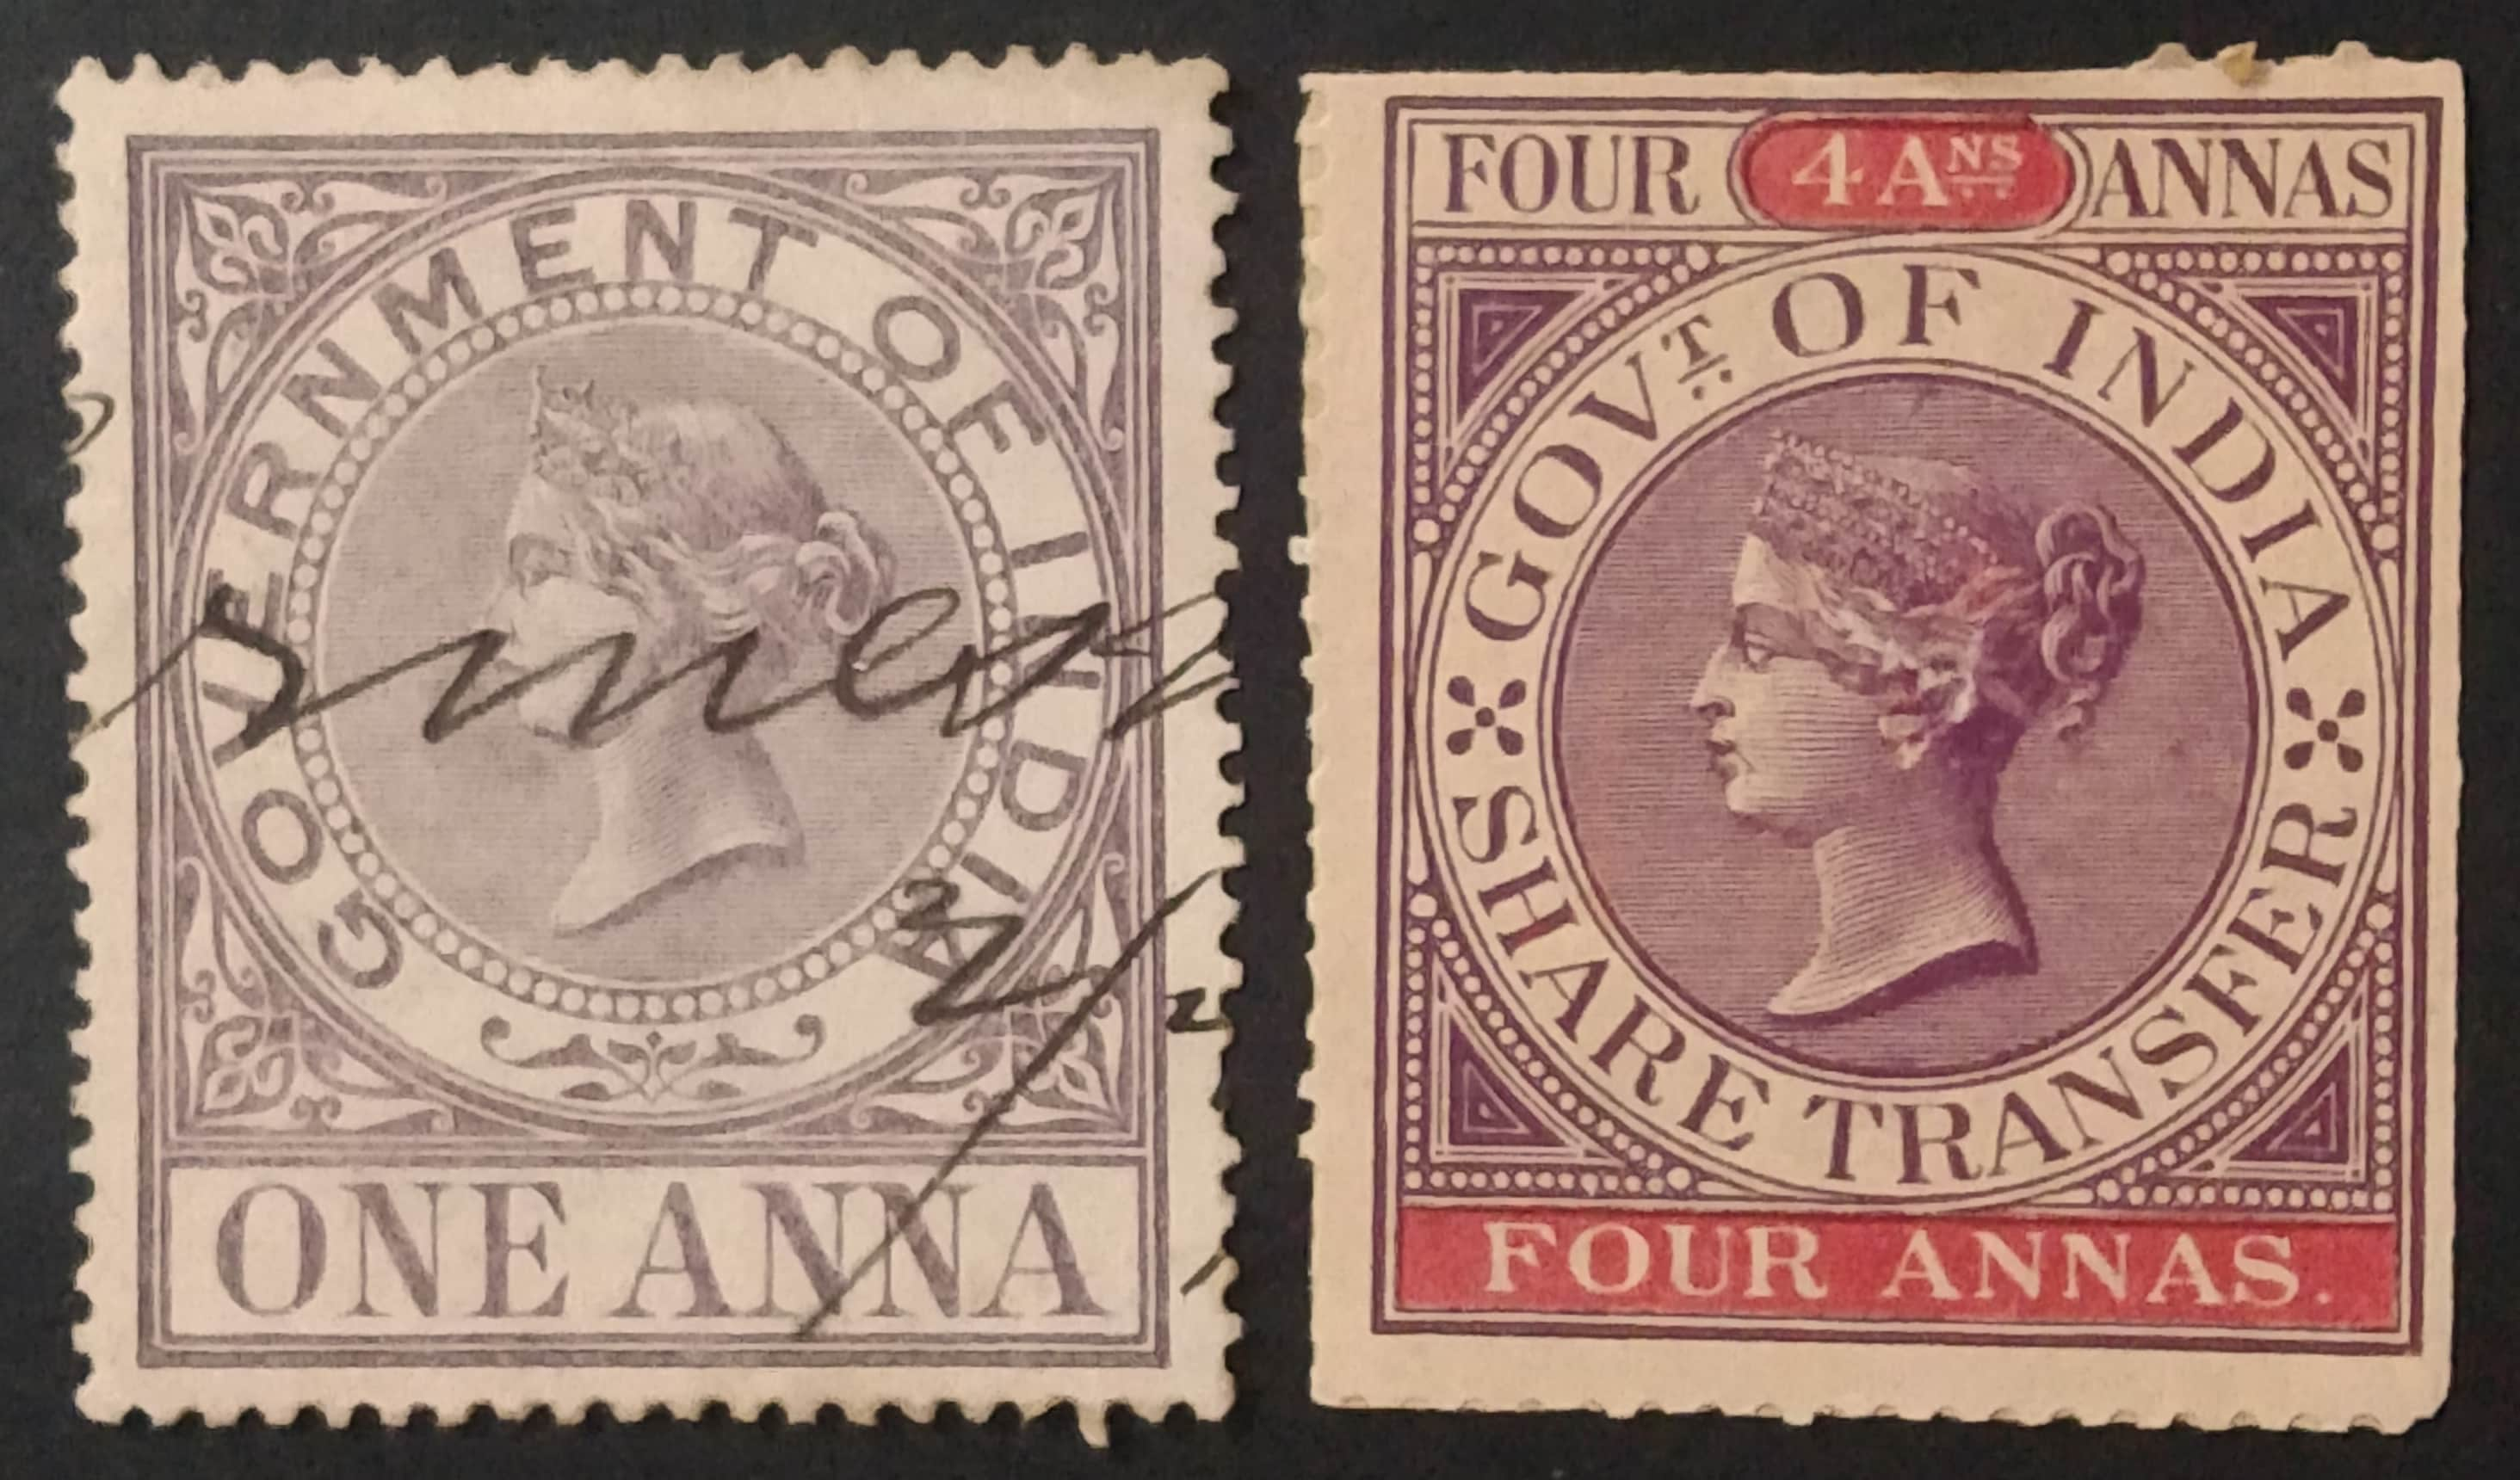 Two 19th century Victorian stamps from the collection of Parminder Singh (Bikku), priced at one anna and four annas.